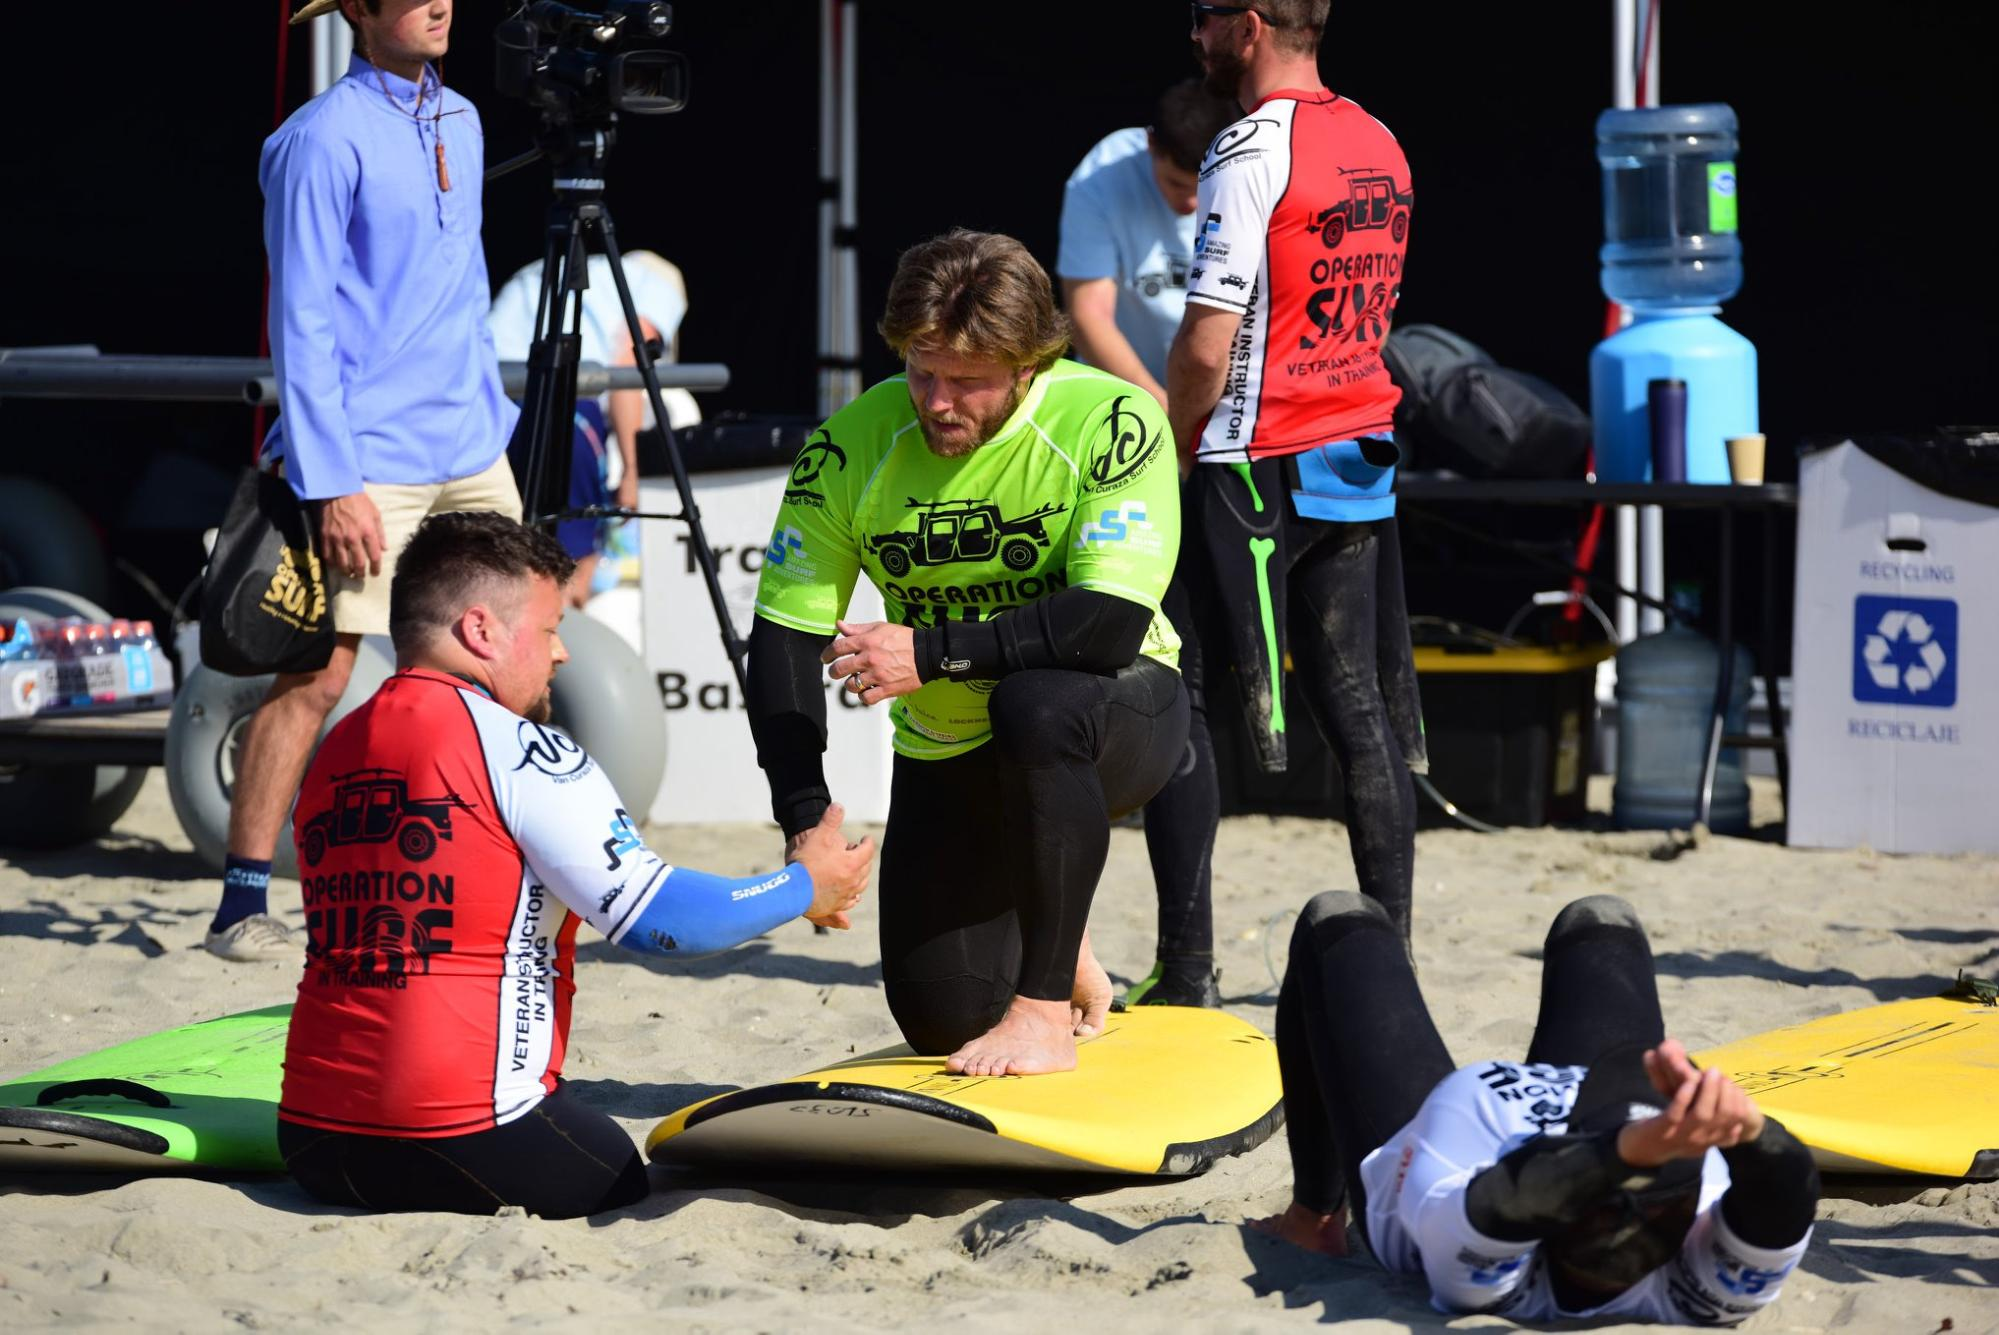 Support for Wounded Veterans through<br>Operation Surf